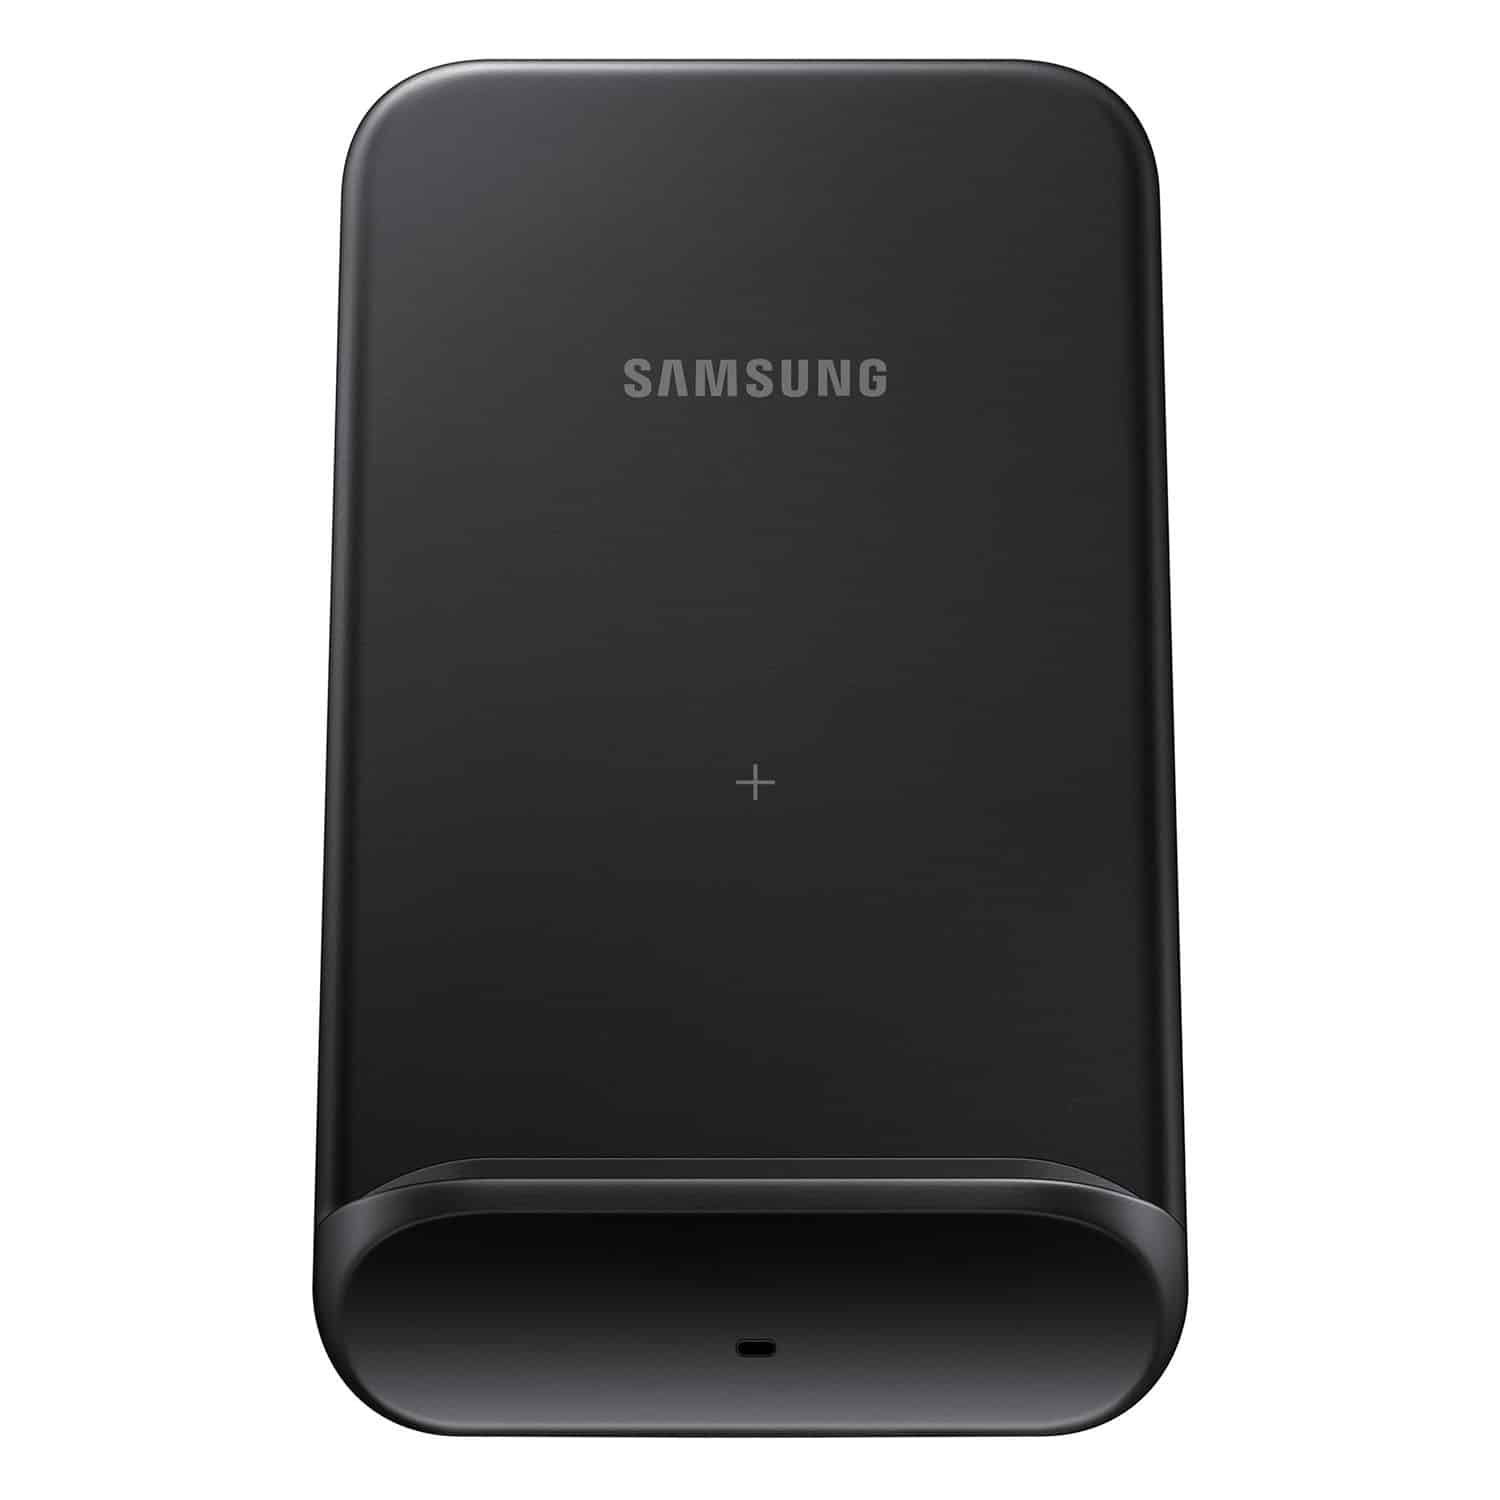 Here's What Samsung's New Convertible Wireless Charger